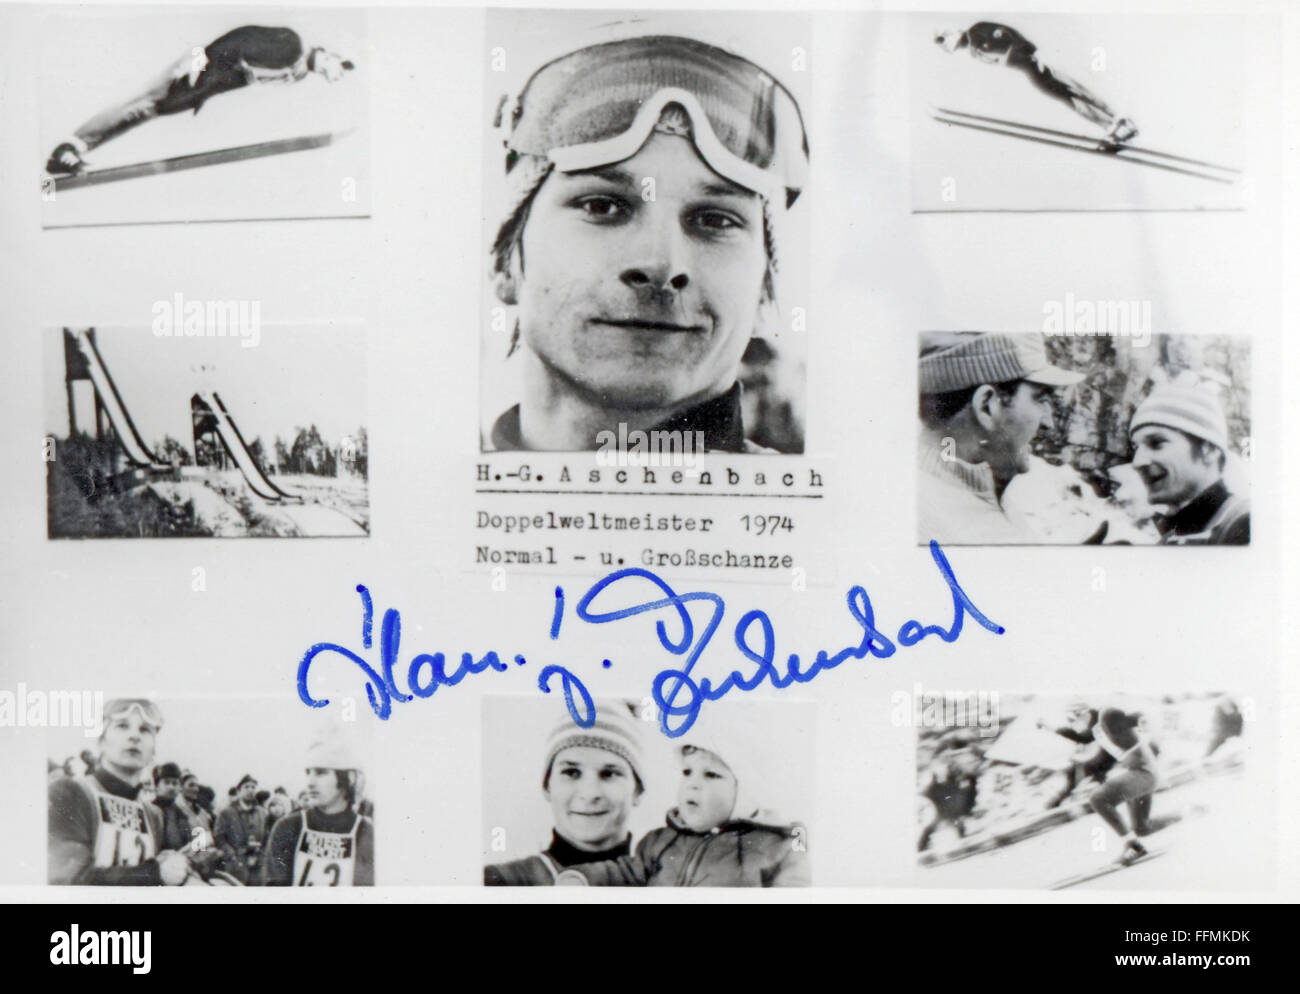 Aschenbach, Hans-Georg, * 25.10.1951, German athlete (ski jumper), trading card, 1970s, Additional-Rights-Clearances - Stock Image